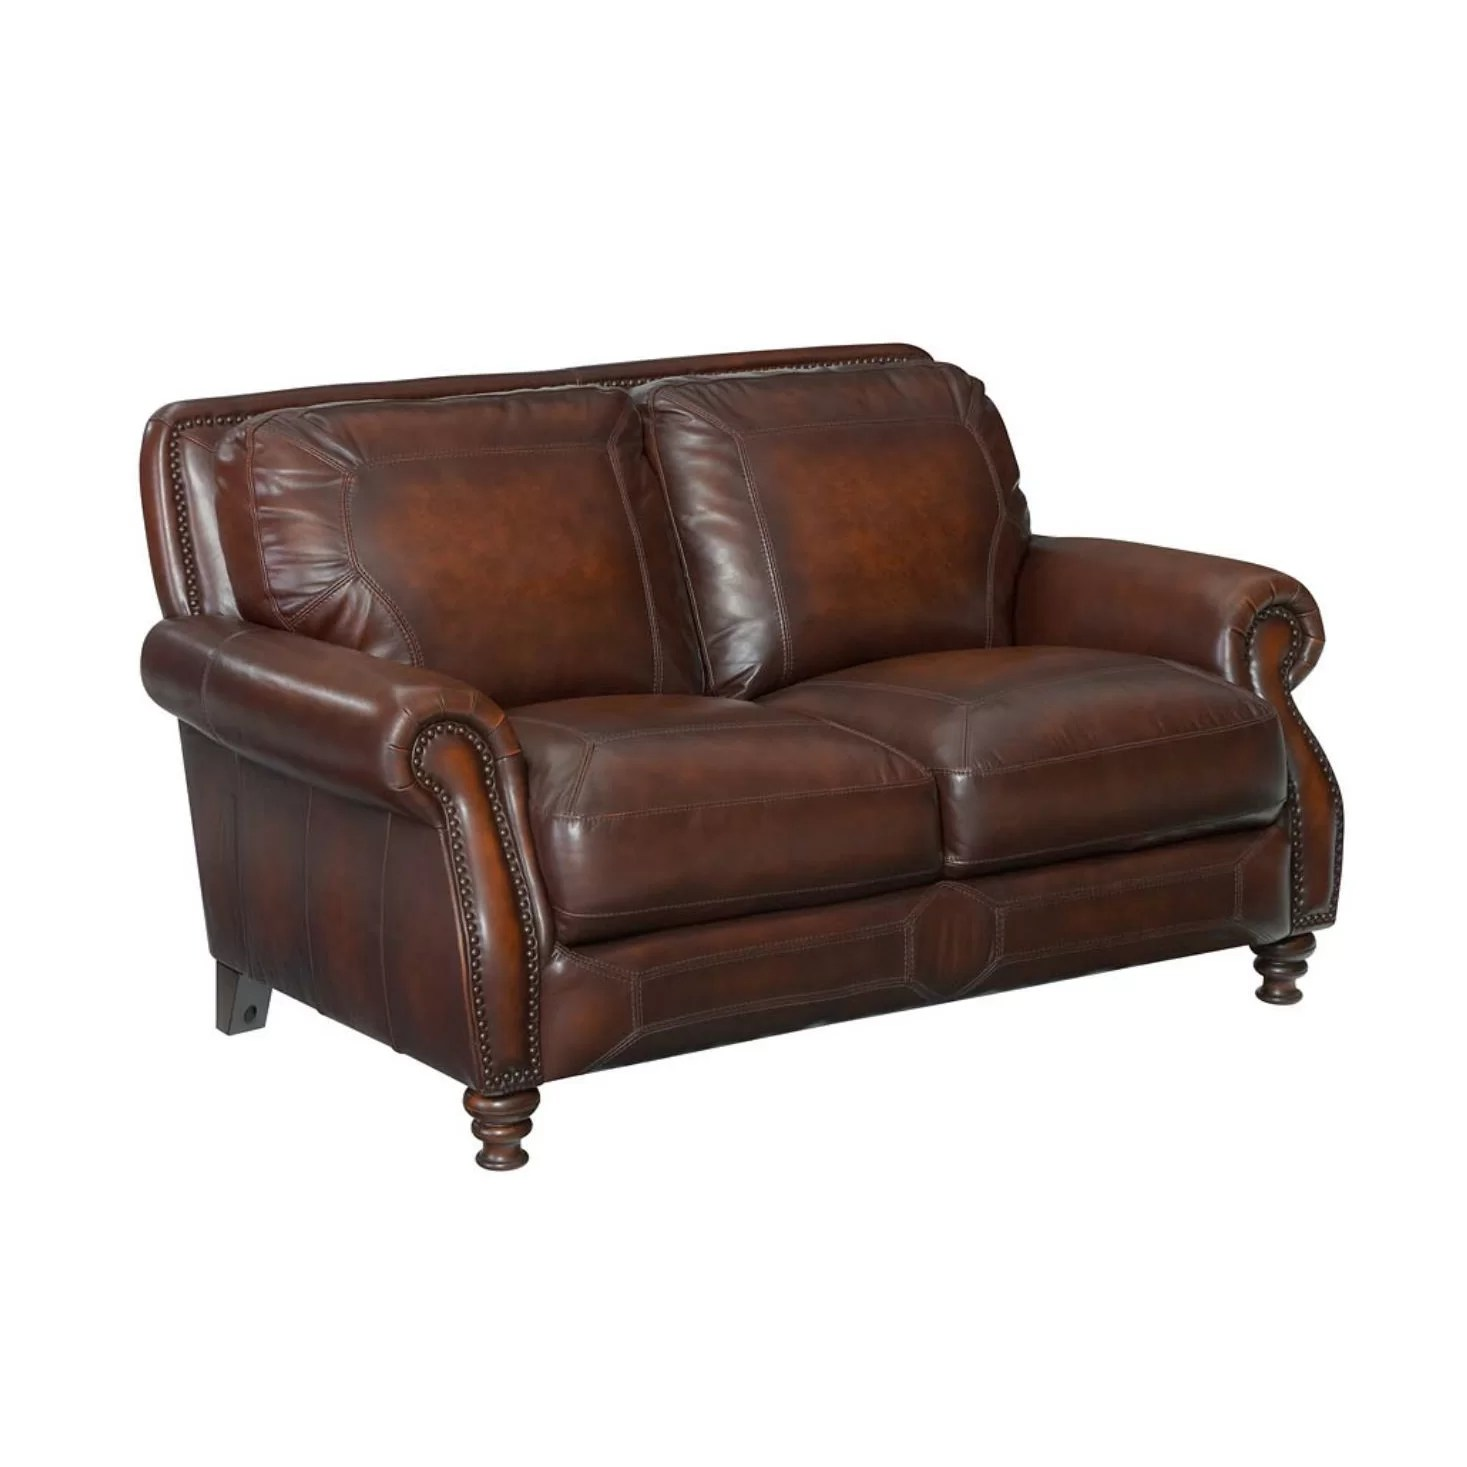 bailey leather sofa bed buy new york rosalind wheeler loveseat and reviews